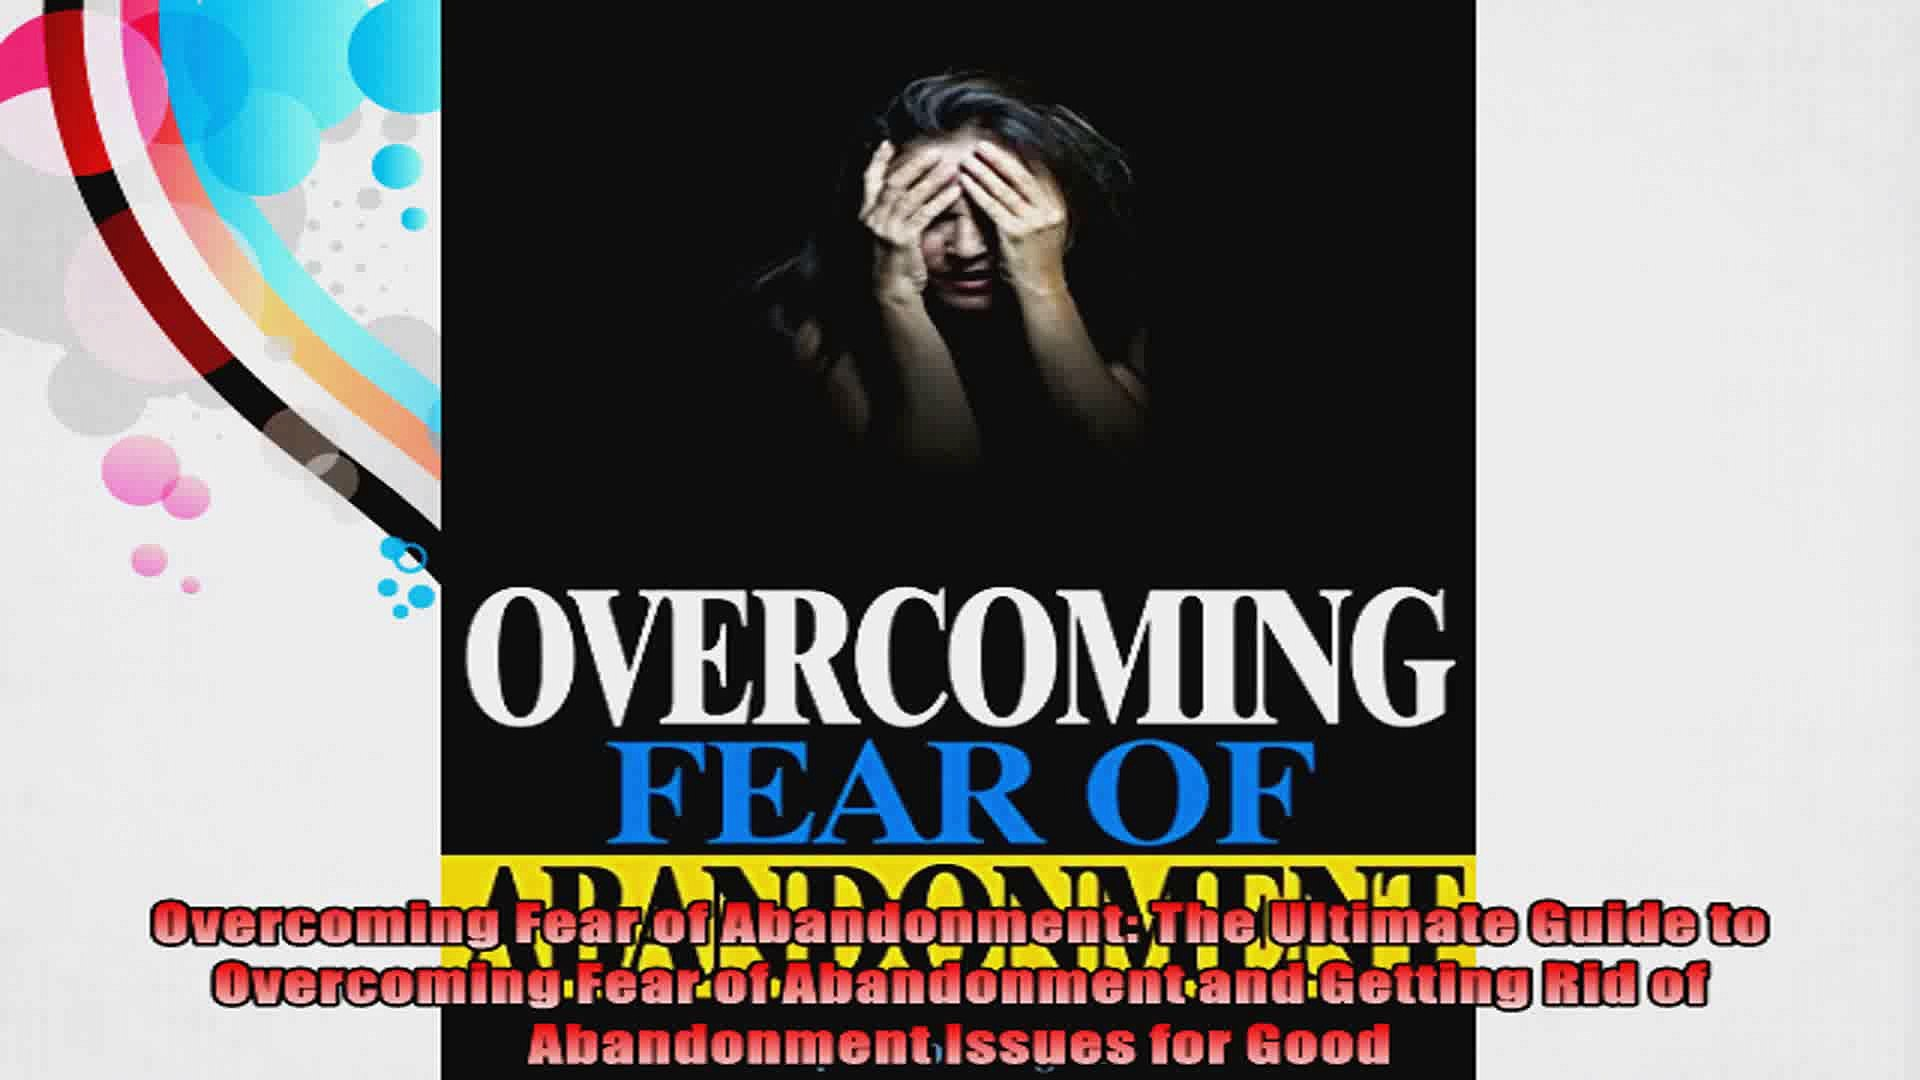 Overcoming Fear Of Abandonment The Ultimate Guide To Overcoming Fear Of Abandonment And Video Dailymotion